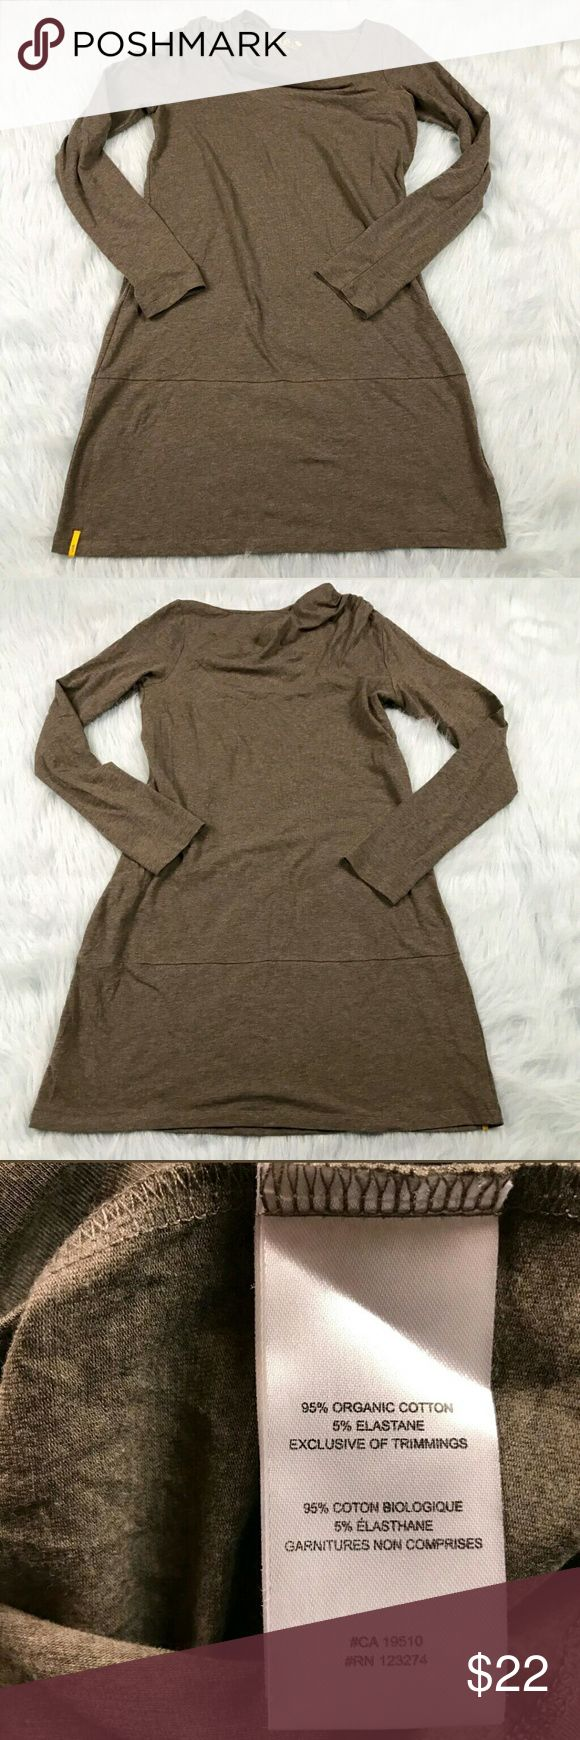 """Lole Tunic Faux Wrap Shoulder Dress Lole gray faux wrap shoulder long sleeve tunic dress. Womens size Medium. Gently used, without flaws. See pictures for details.  Armpit to Armpit - 17"""" Length - 34""""  Inventory 04262017 Lole Dresses"""